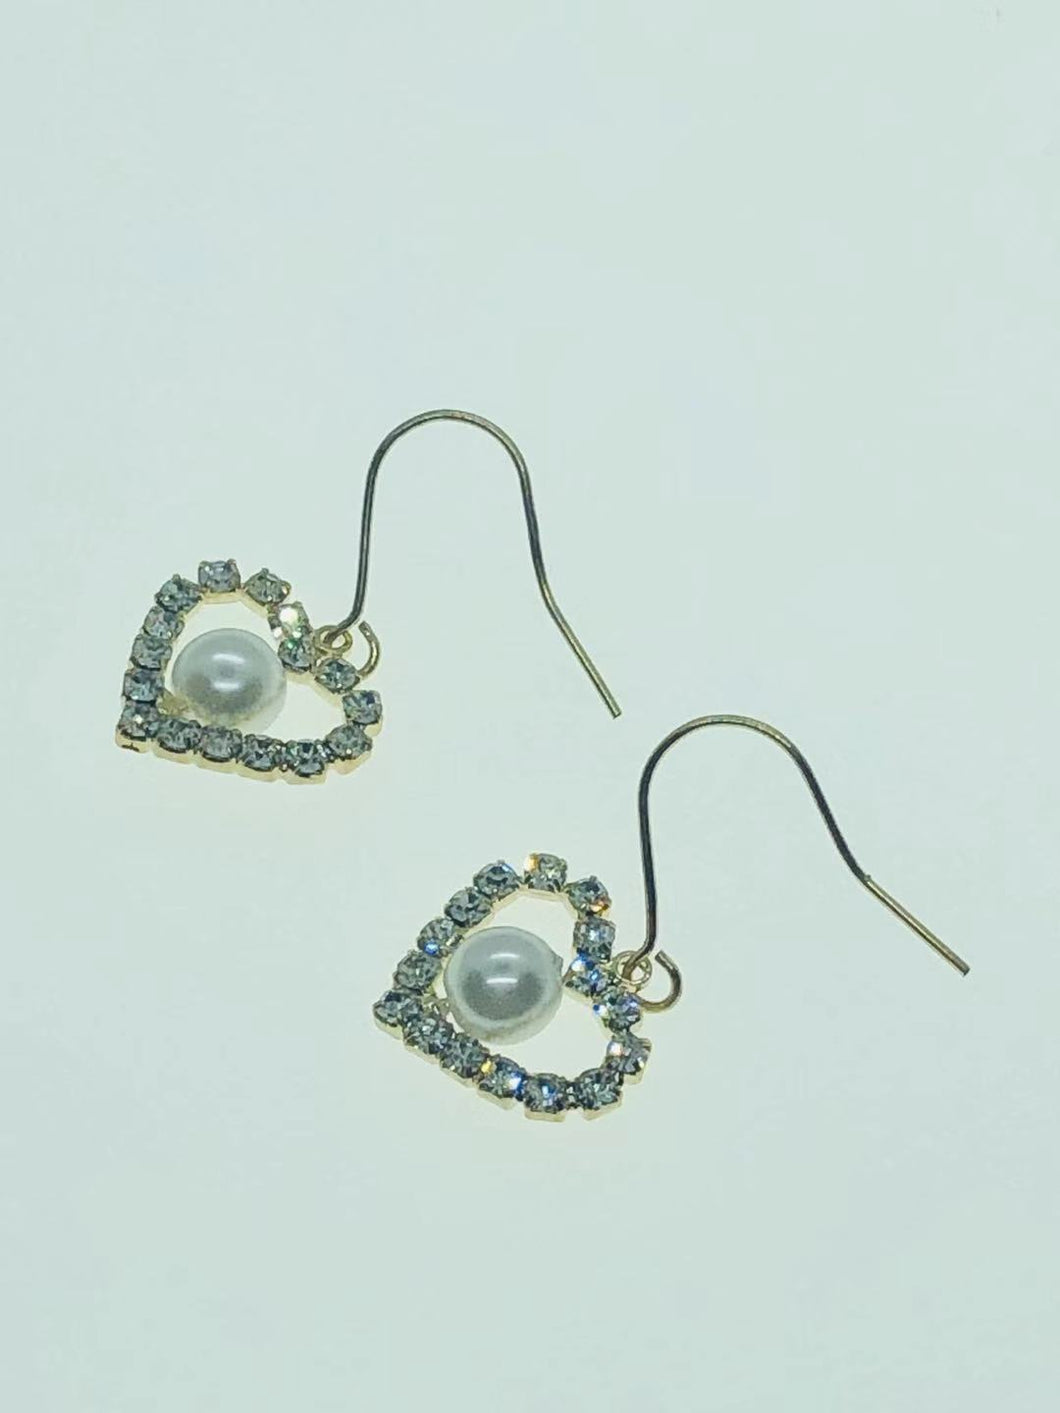 22-JM-JA05038, HEART PENDANT FAUX PEARL EARRING ($15.60 for 12)